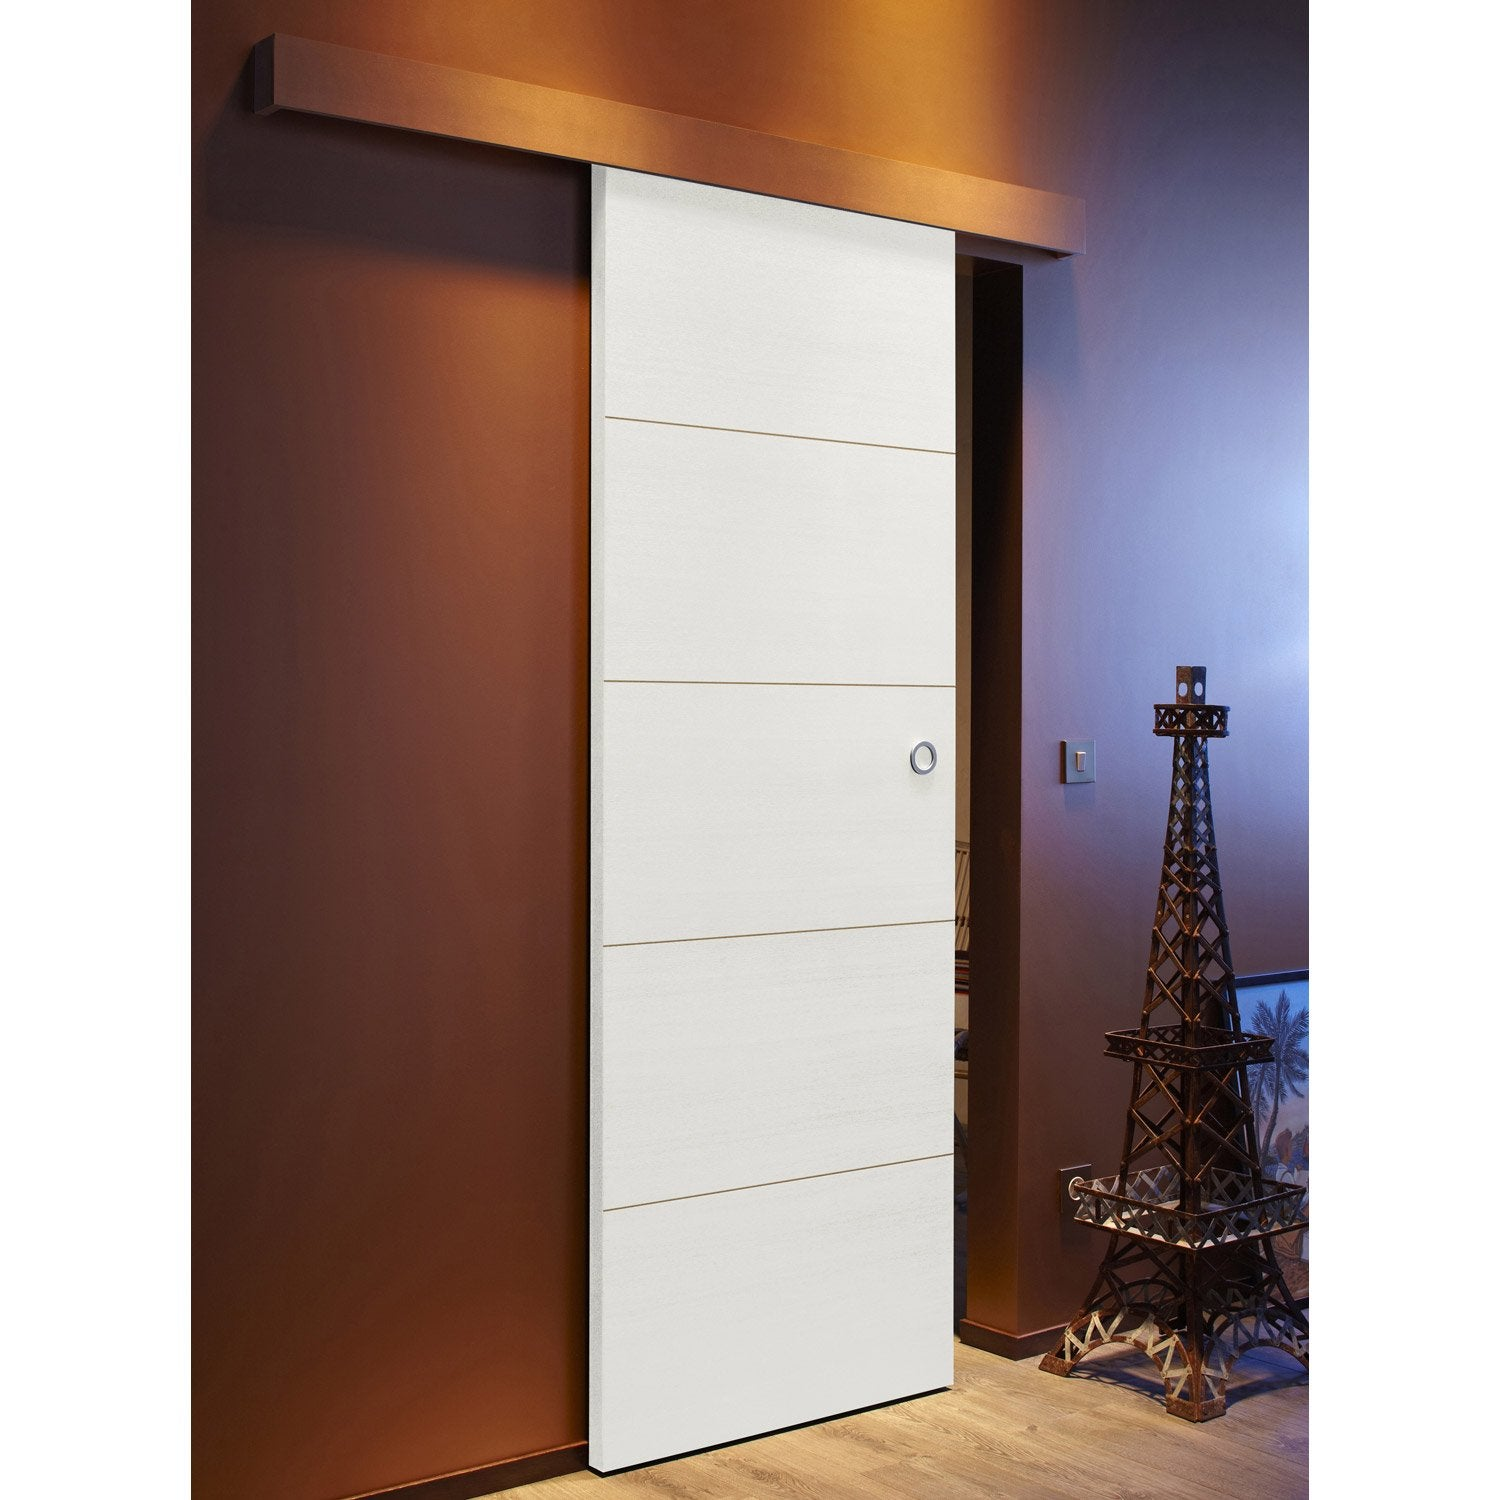 Porte coulissante encastrable leroy merlin beautiful - Porte coulissante encastrable castorama ...